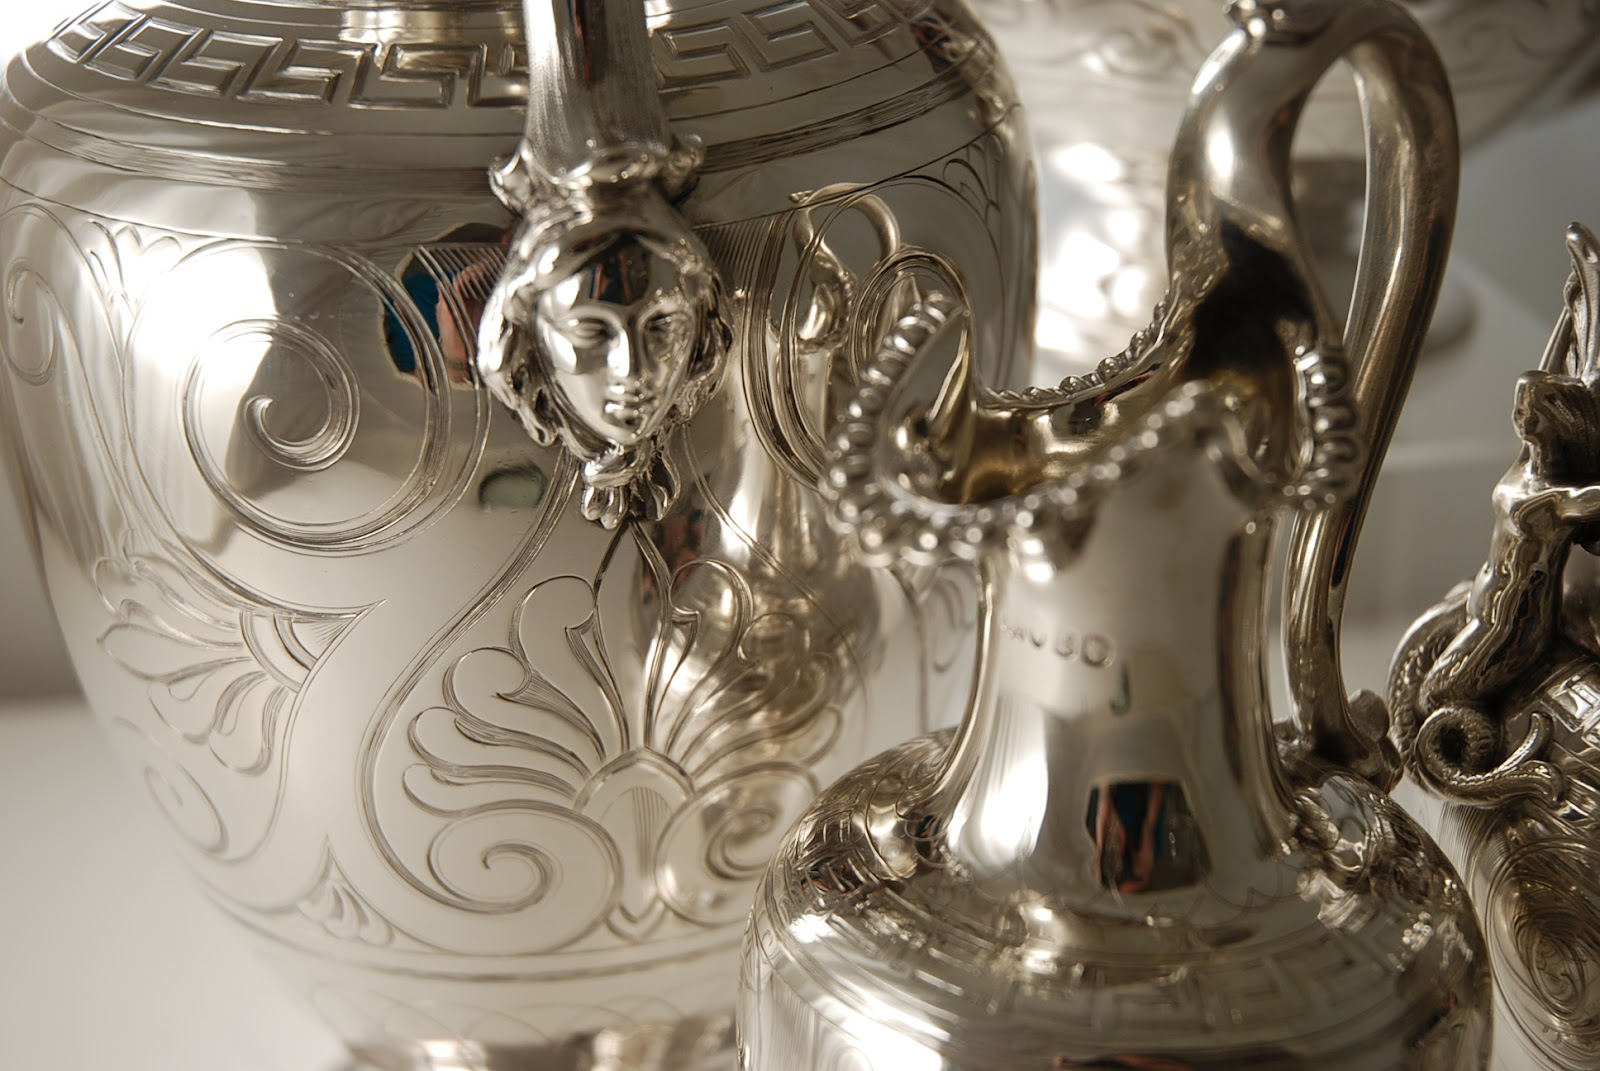 Antique Silver Tea Sets and antique silver plated tea sets are highly prized and a truly wonderful way to add a little luxury to every day life. & Antique Silver and Design Blog: Antique Silver Tea Sets